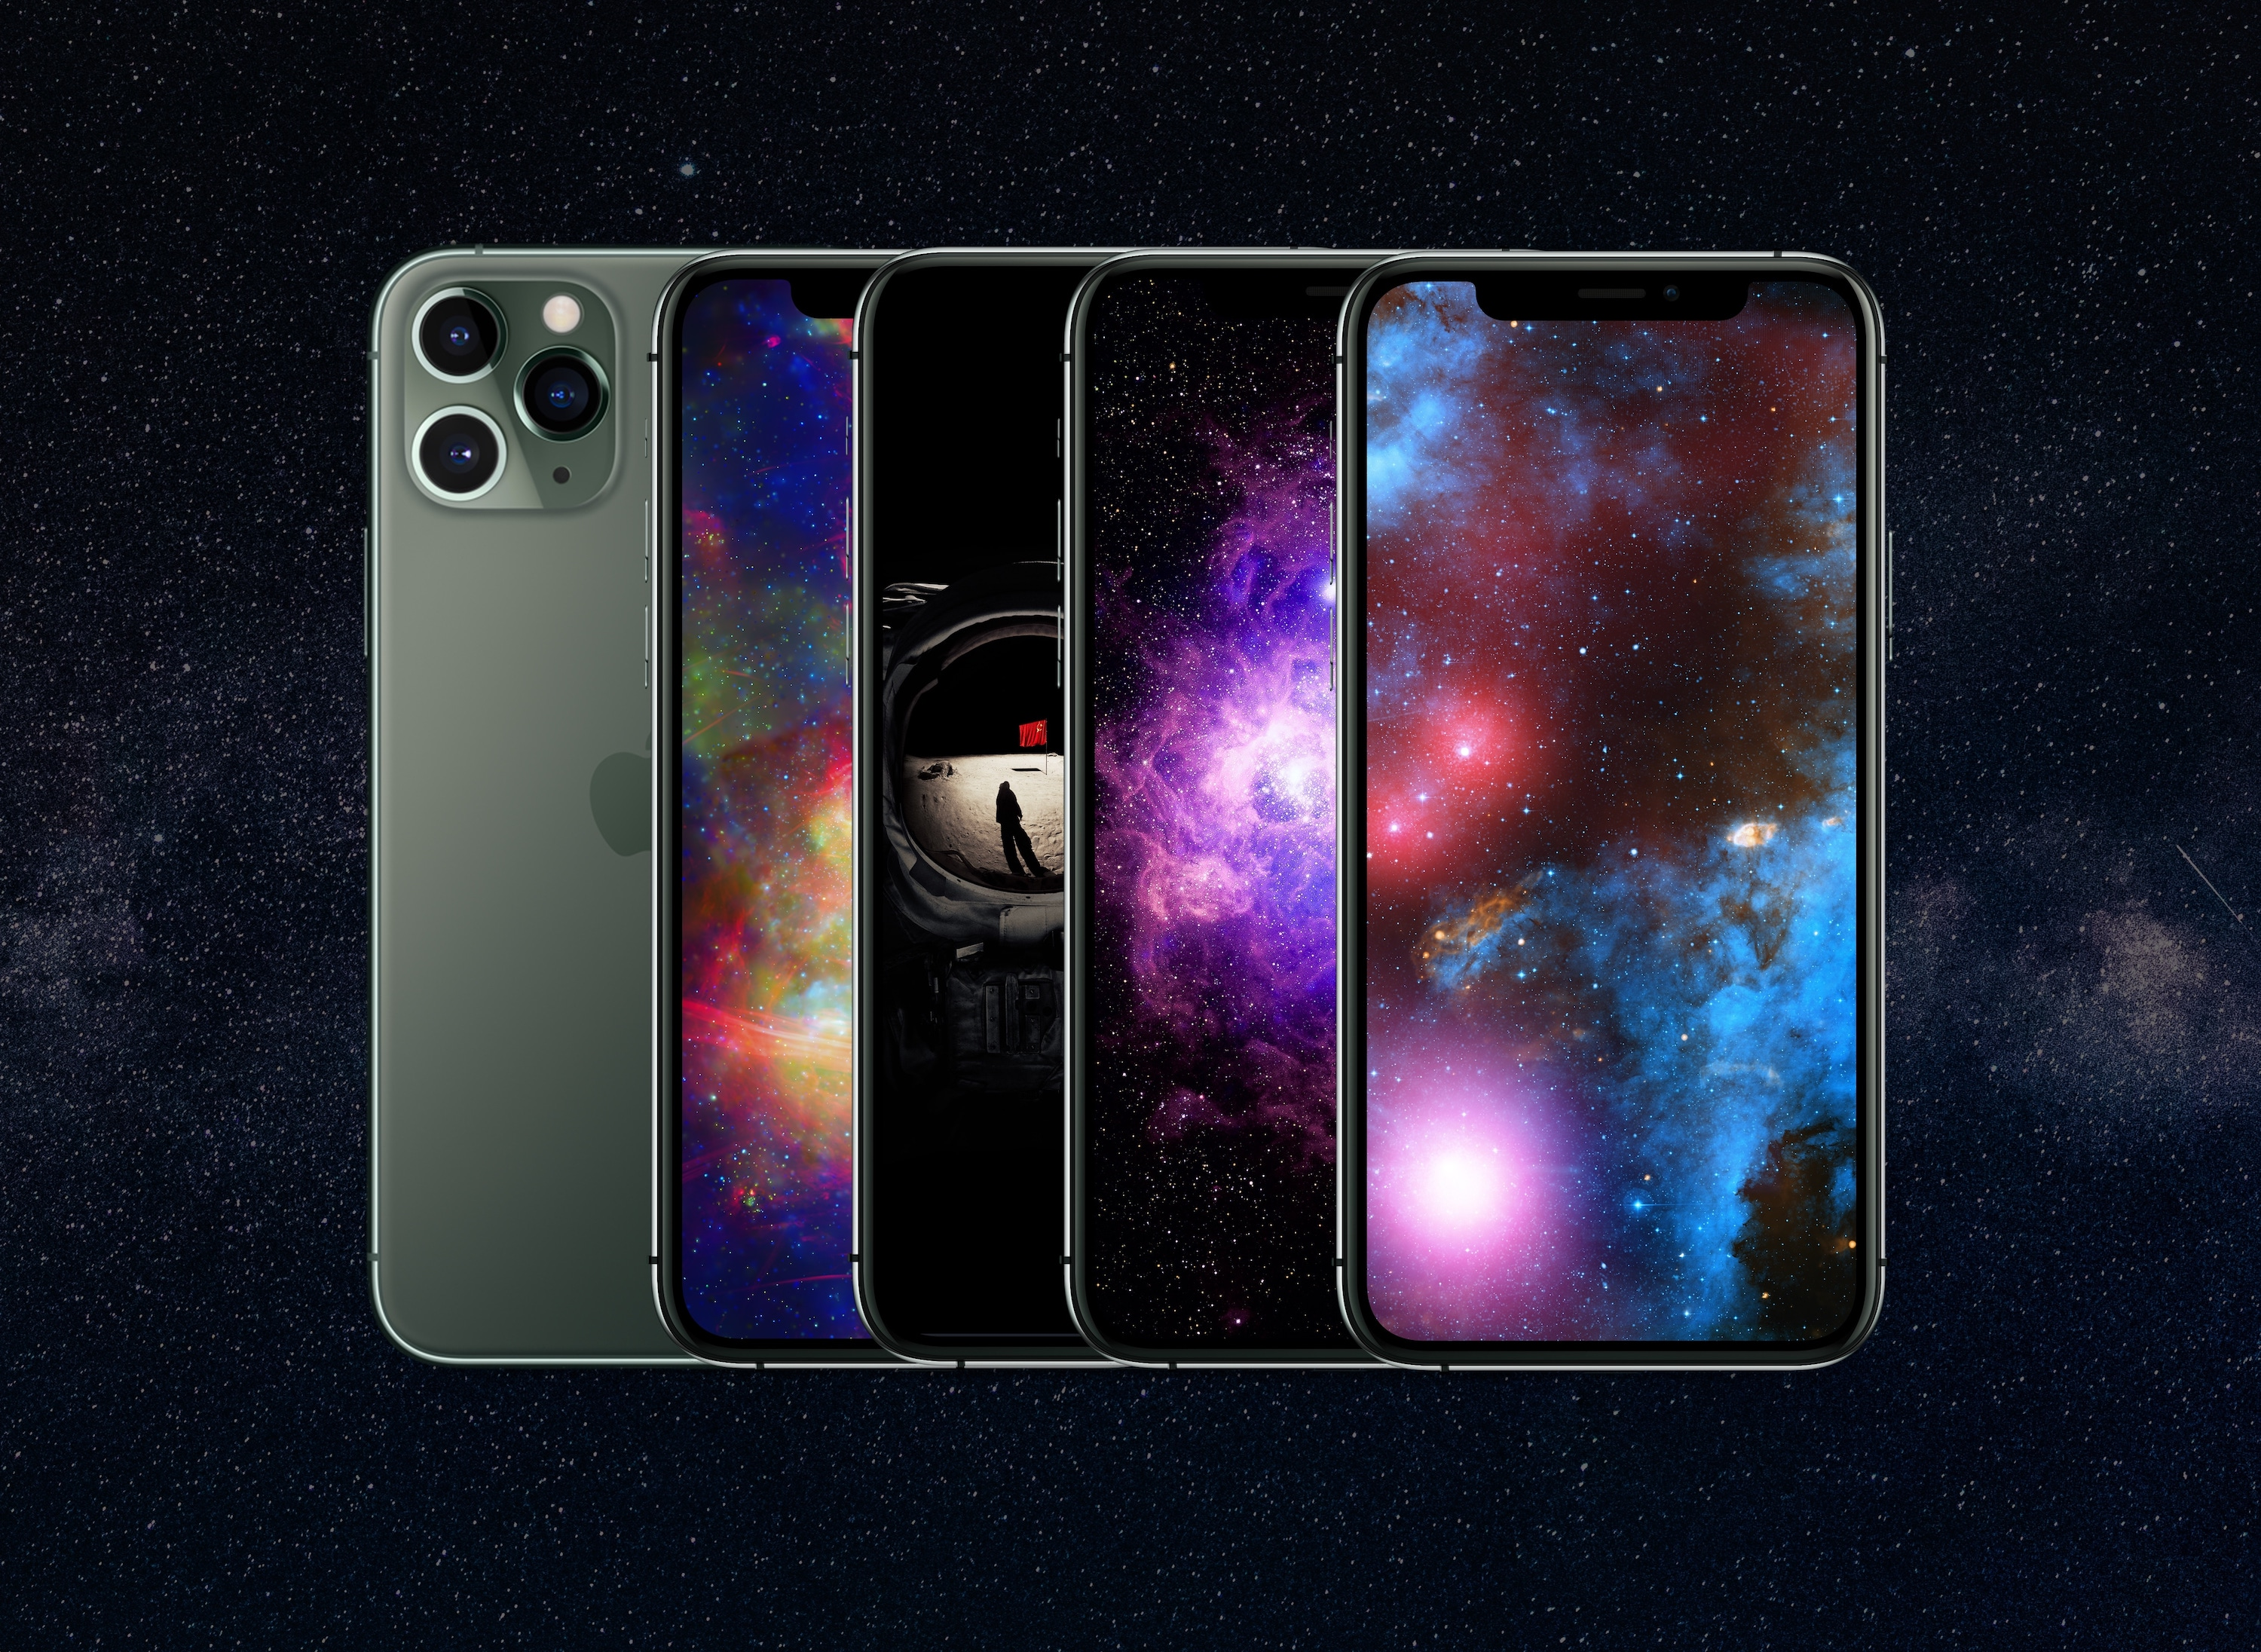 galaxy wallpaper chandra observatory mockup b